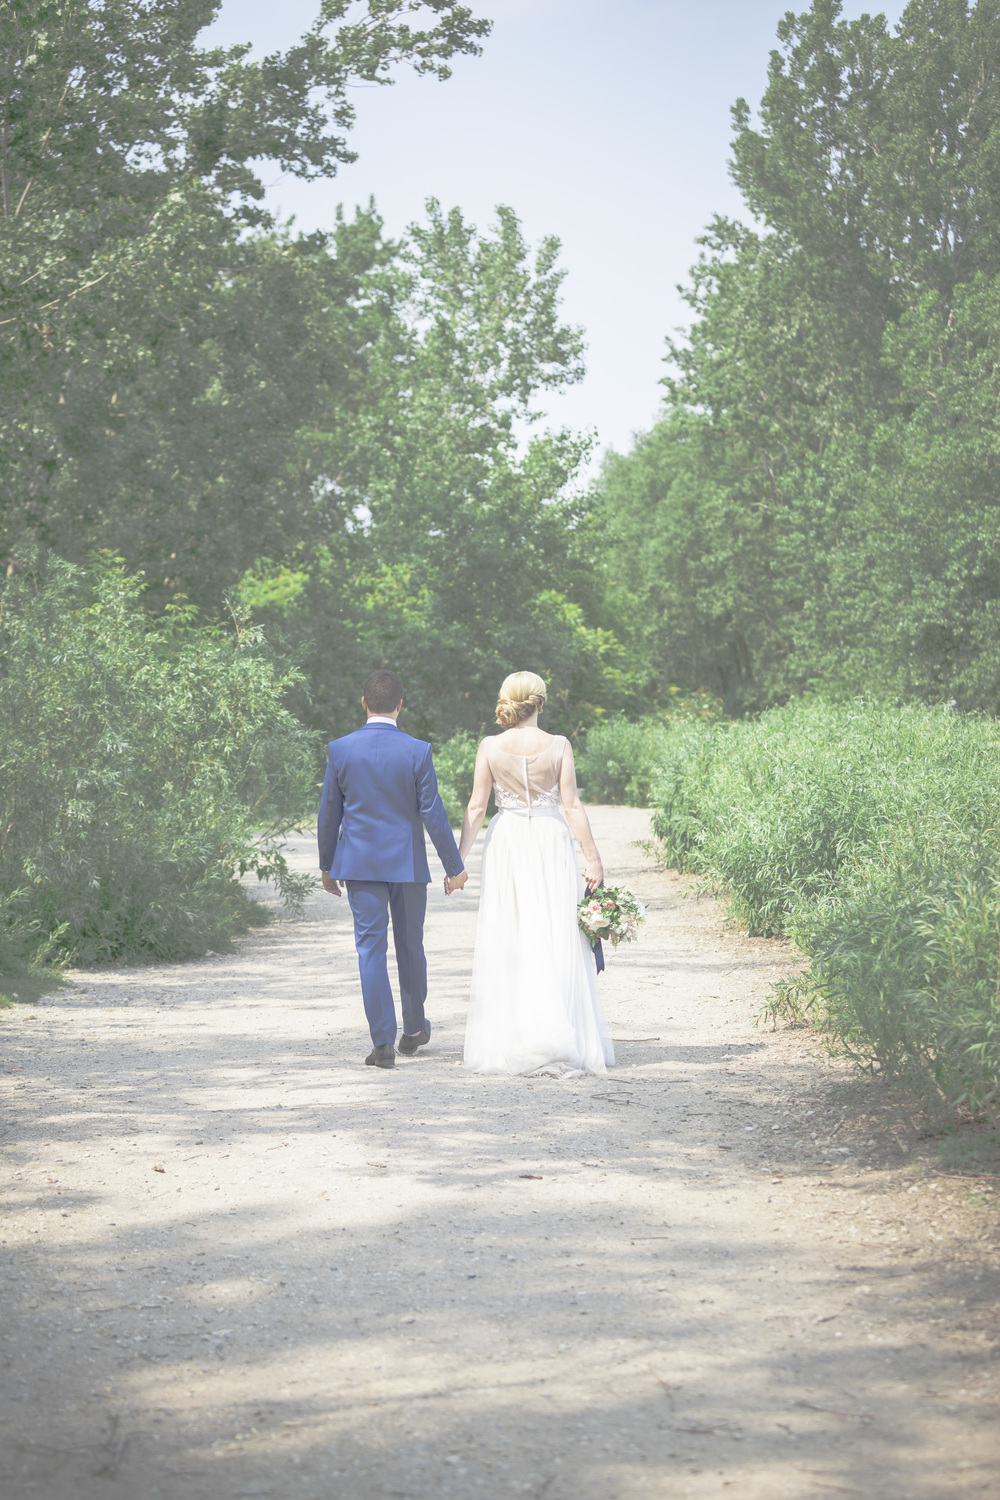 Walking through a path as husband and wife.